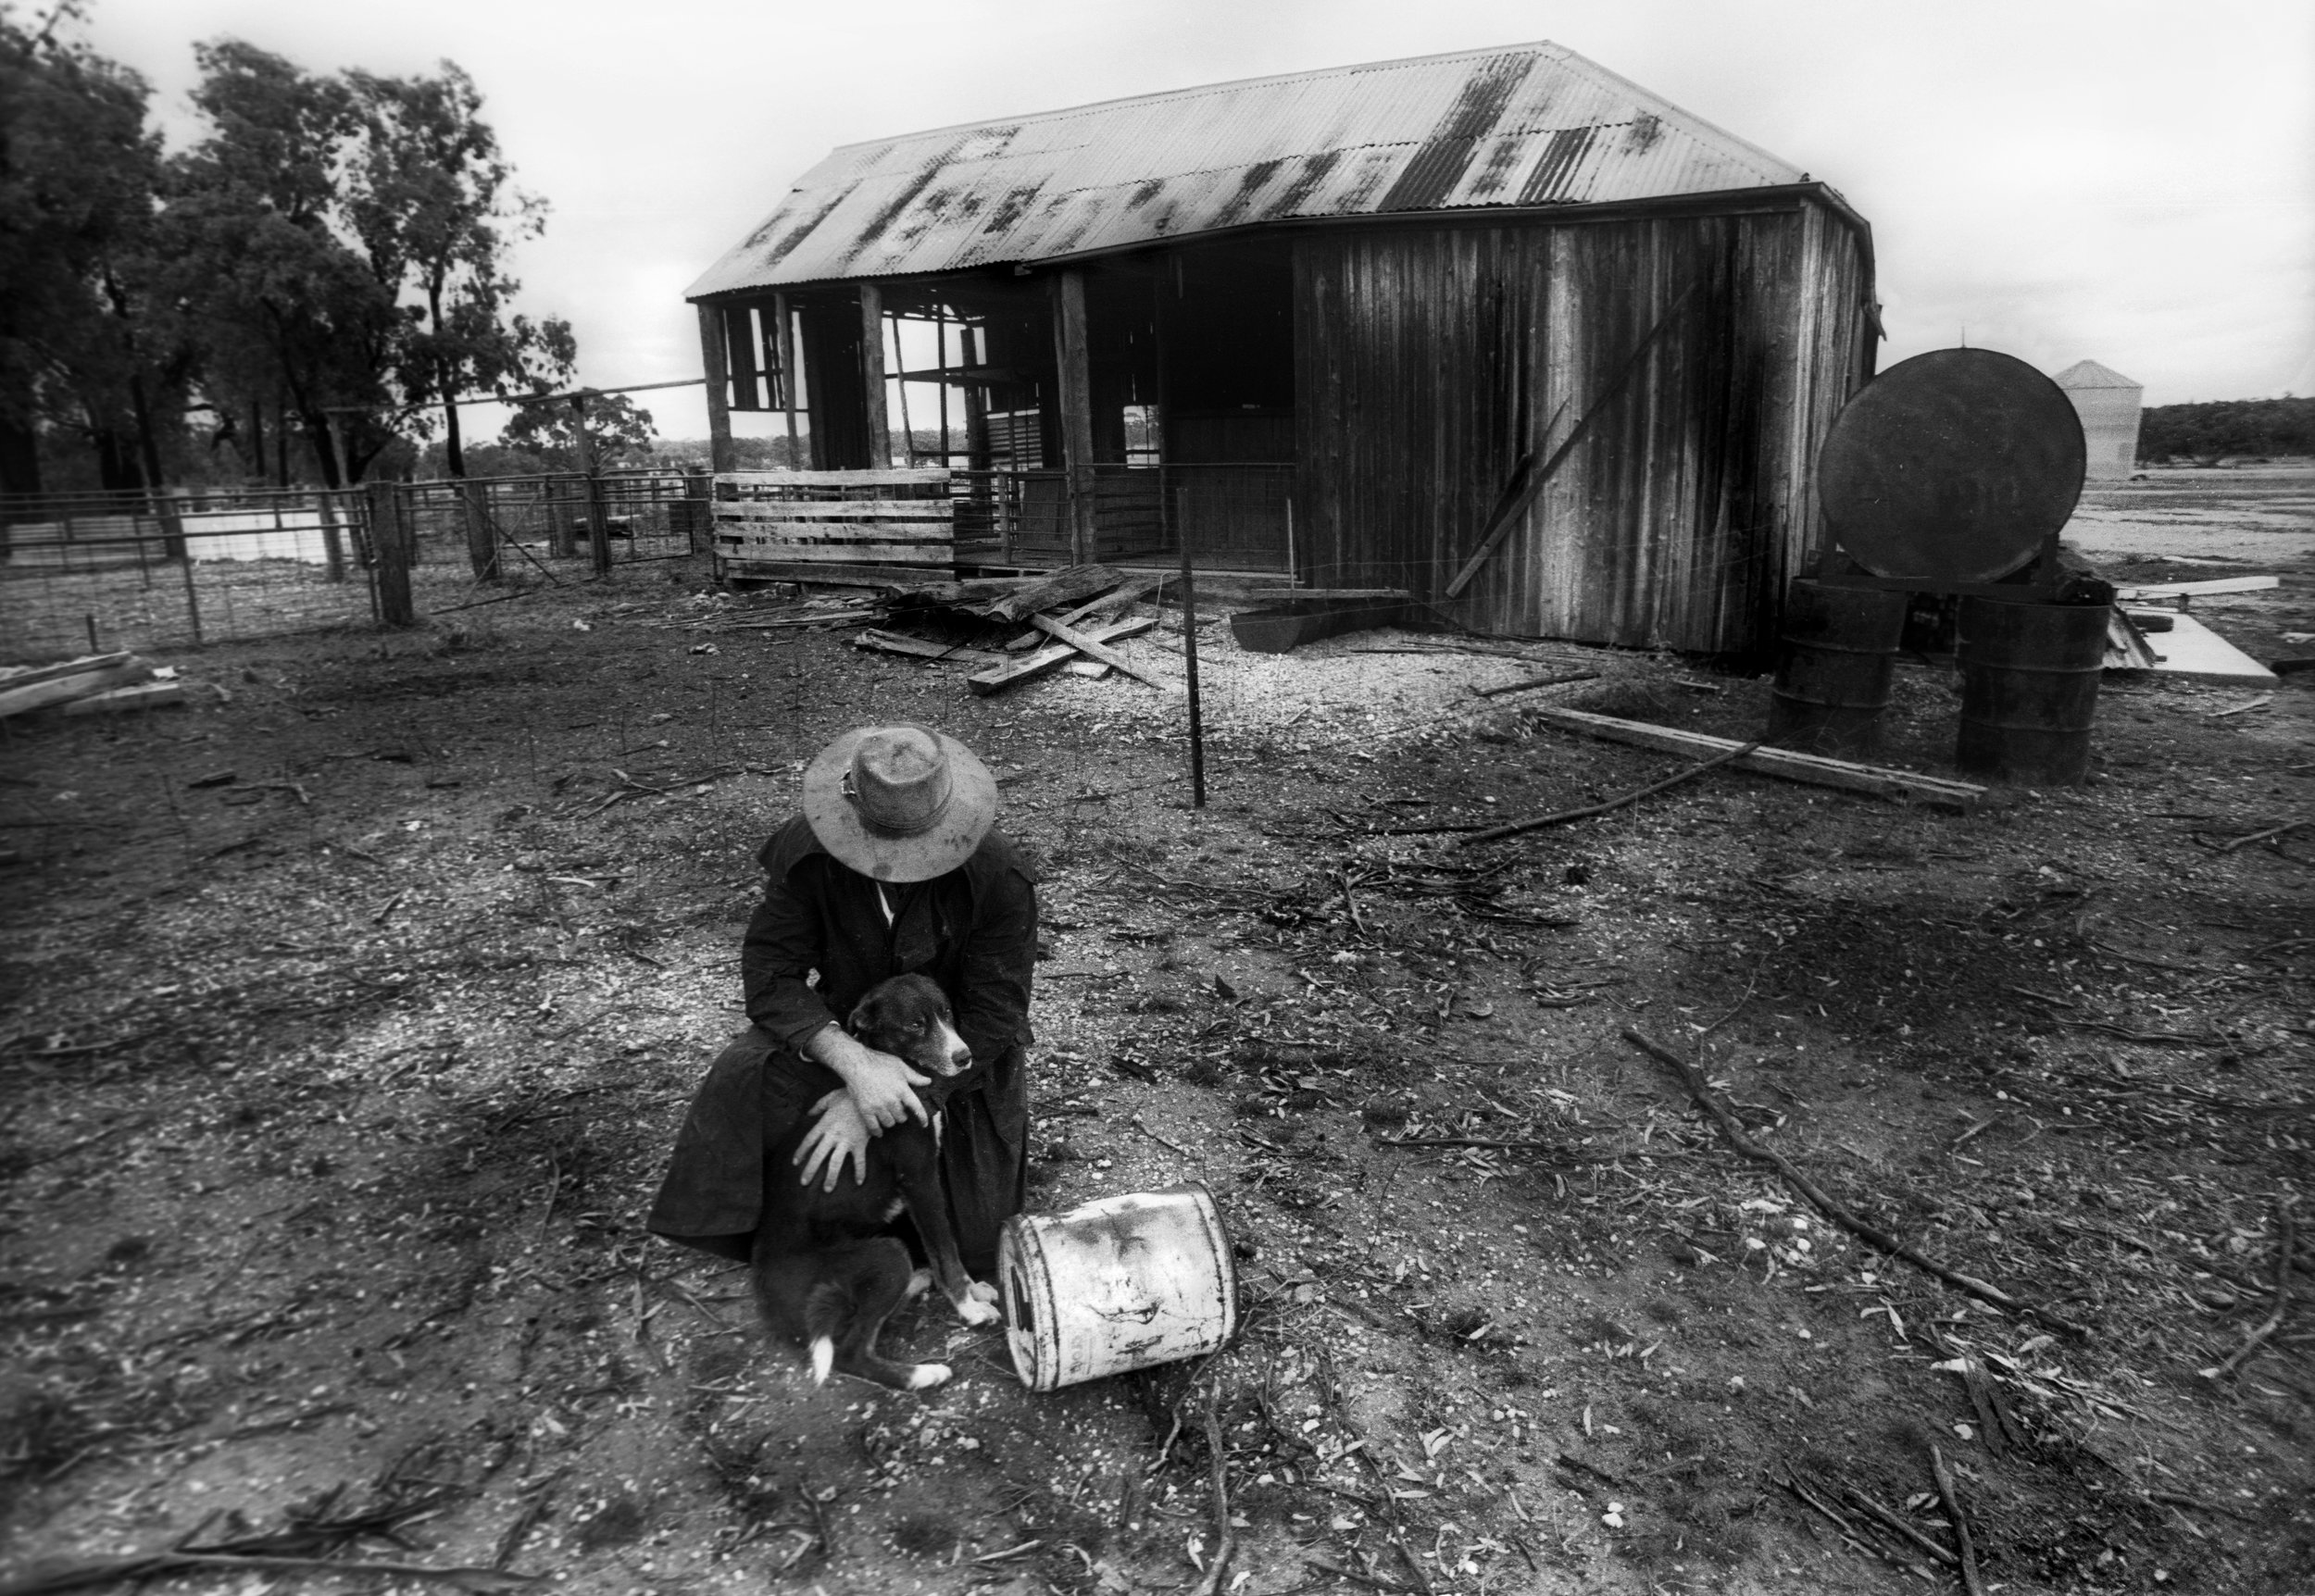 Drought stricken farmer and his dog on a sheep property near Bourke, outback NSW, Australia. 1997